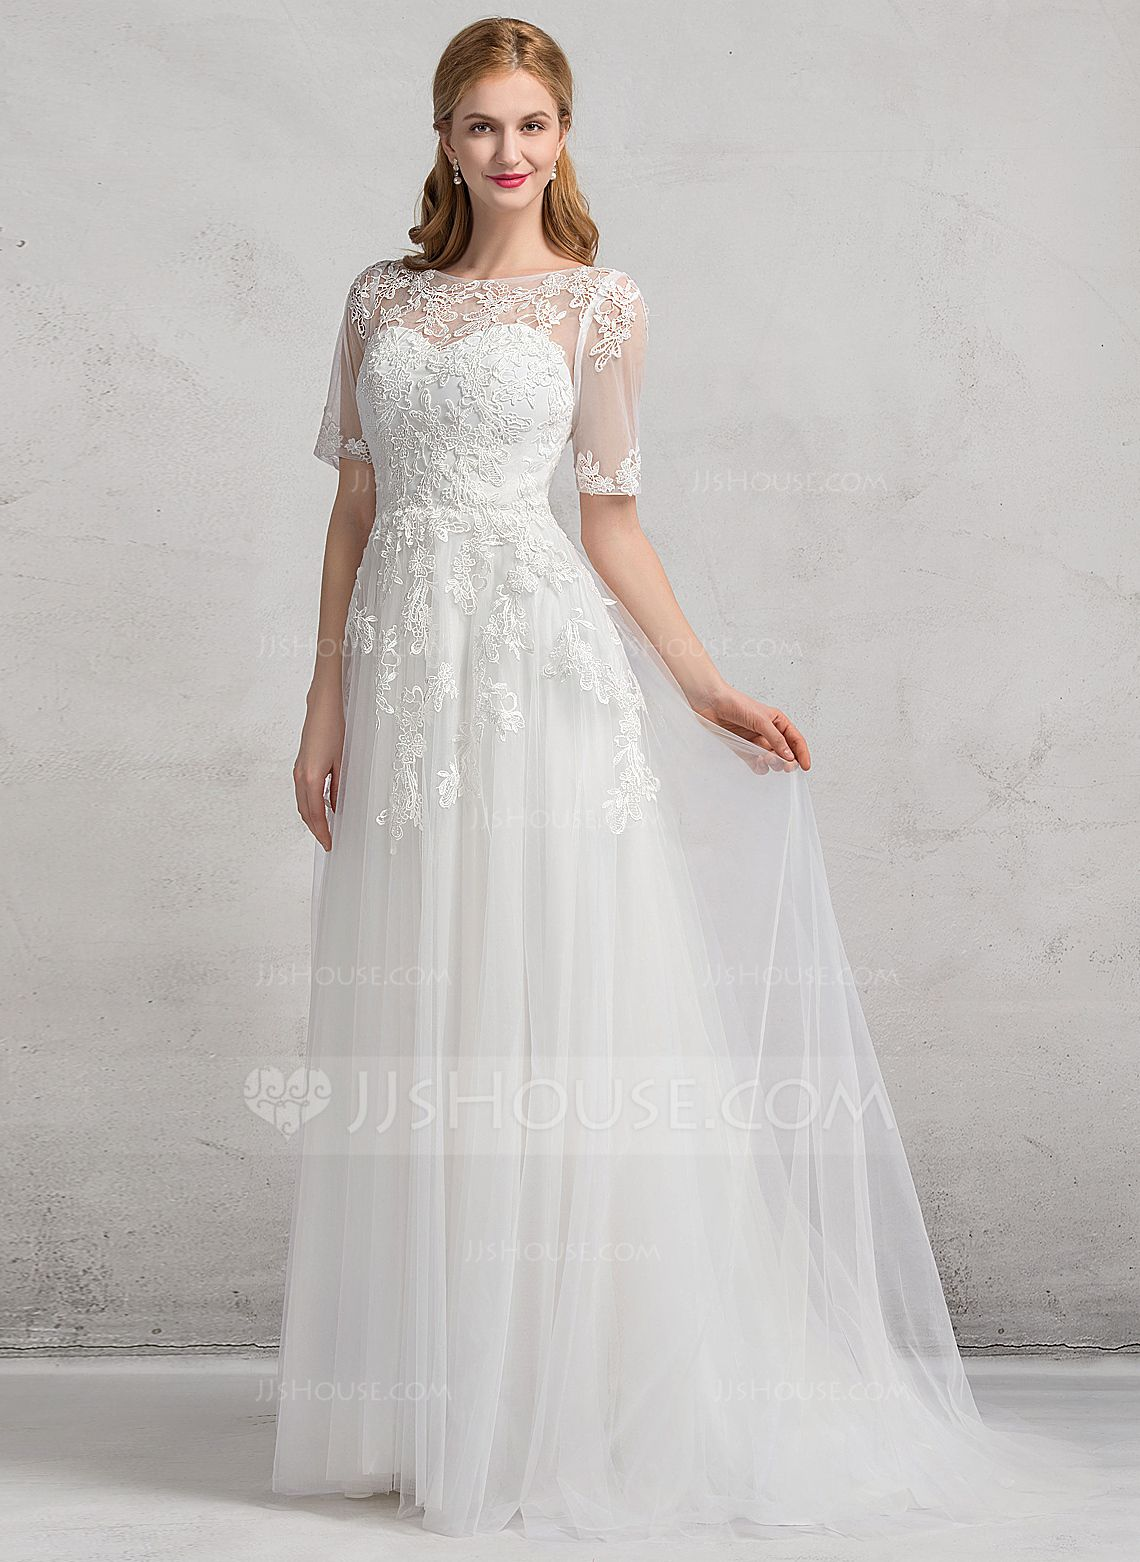 Jjshouse as the global leading online retailer provides a large explore dress rental tulle wedding dresses and more ombrellifo Choice Image